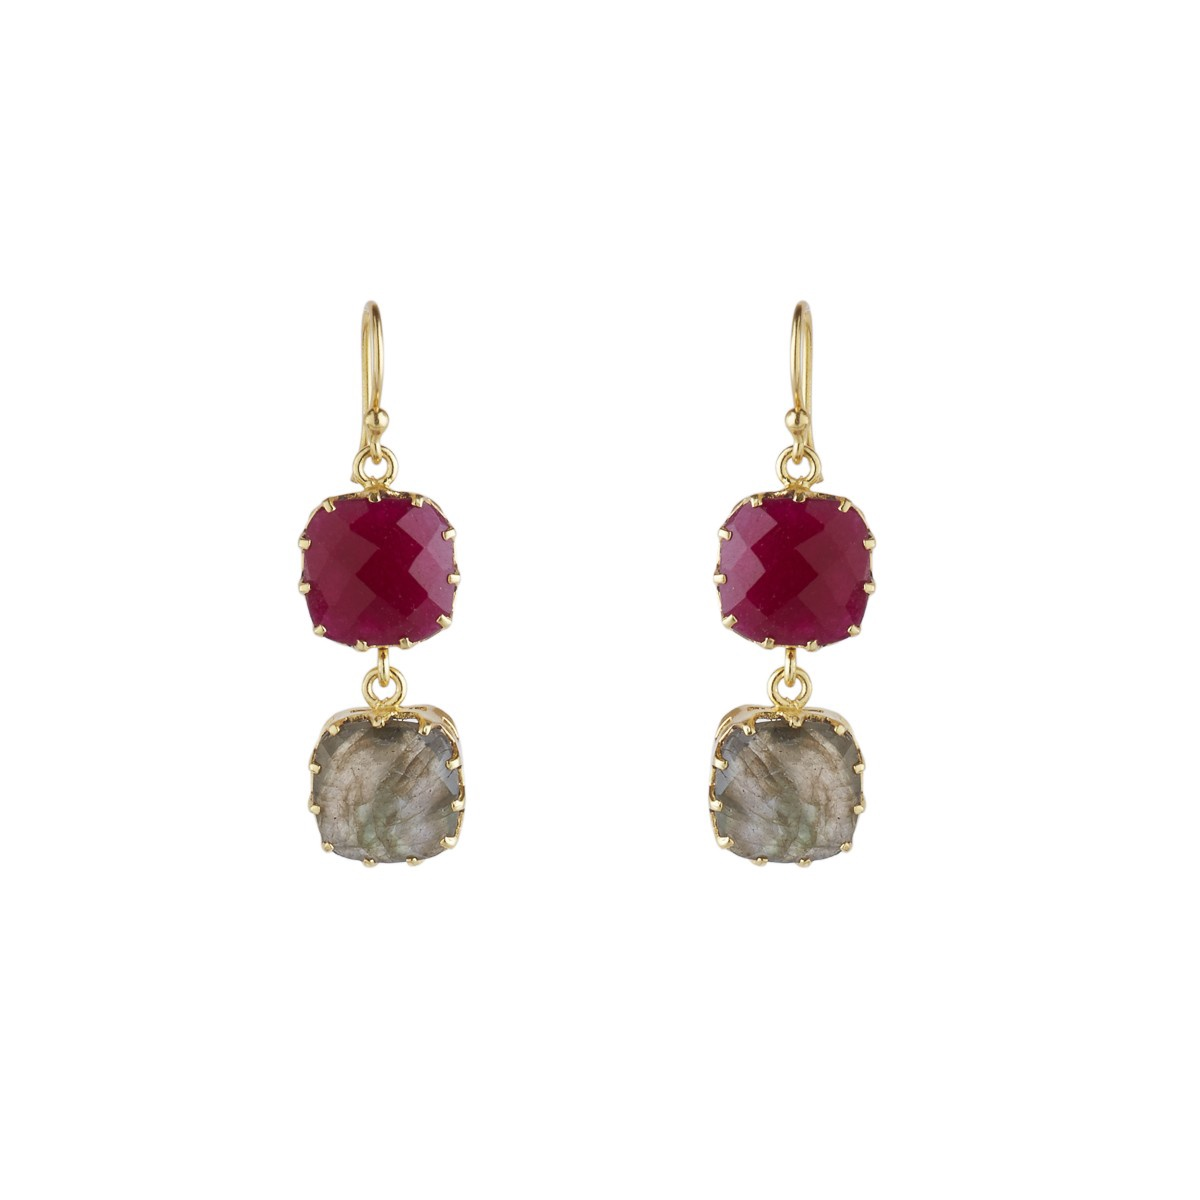 Gemini Two Gemstone Earrings by Ashiana London